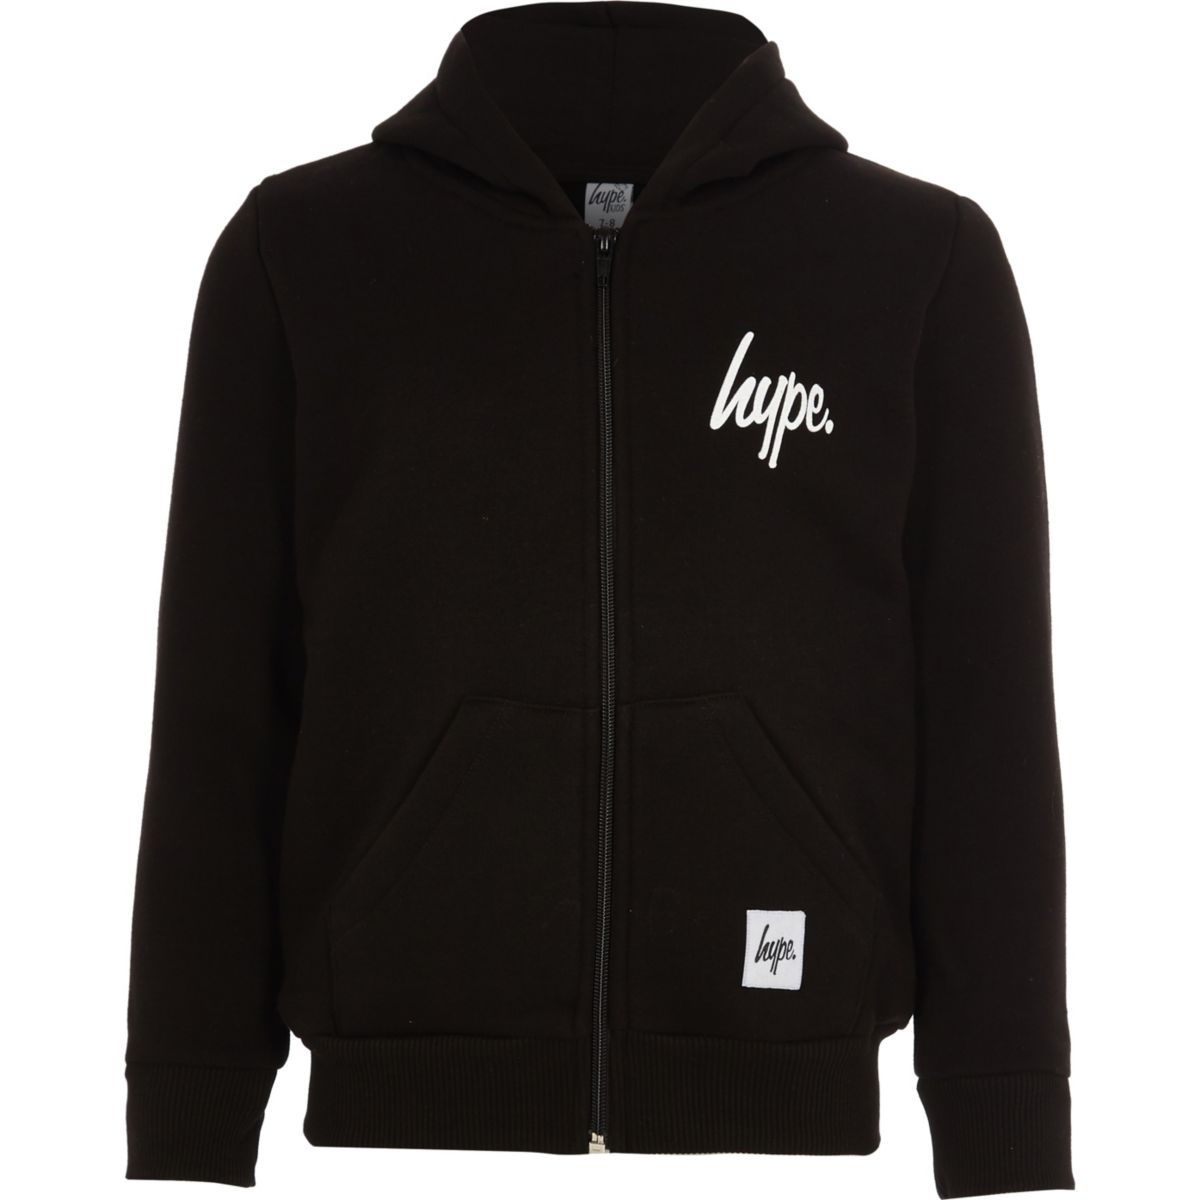 Boys Hype black zip-up hoodie